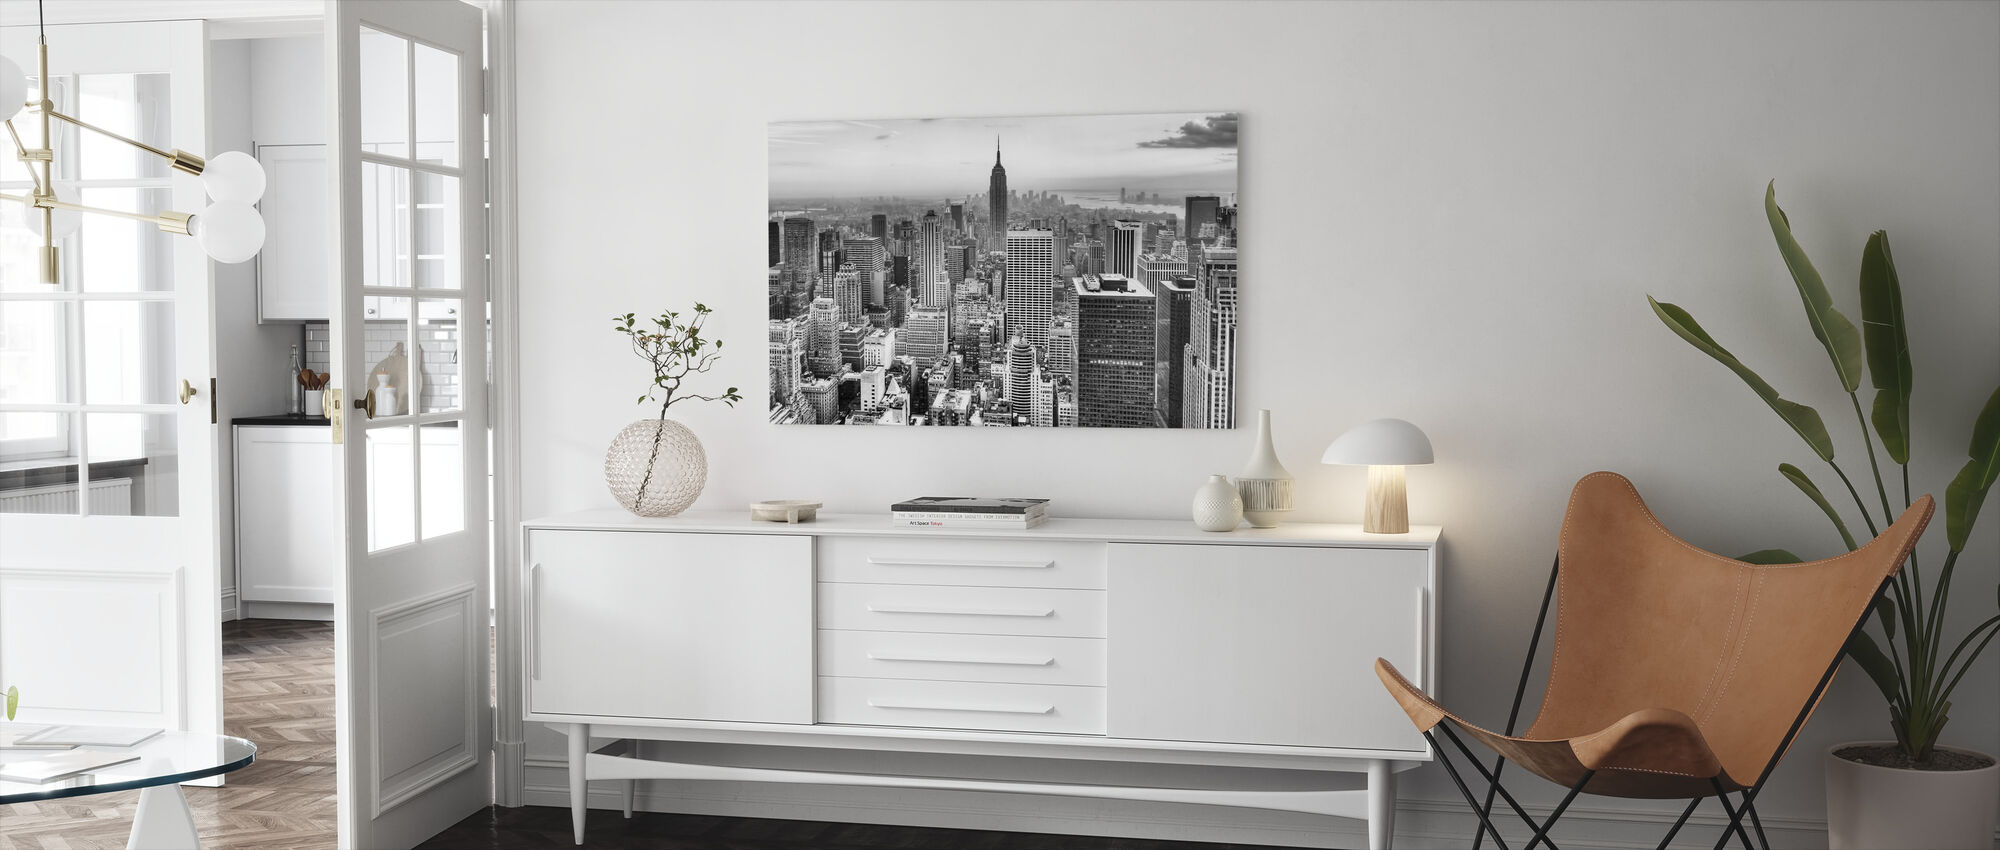 New York City 3 - Canvas print - Living Room